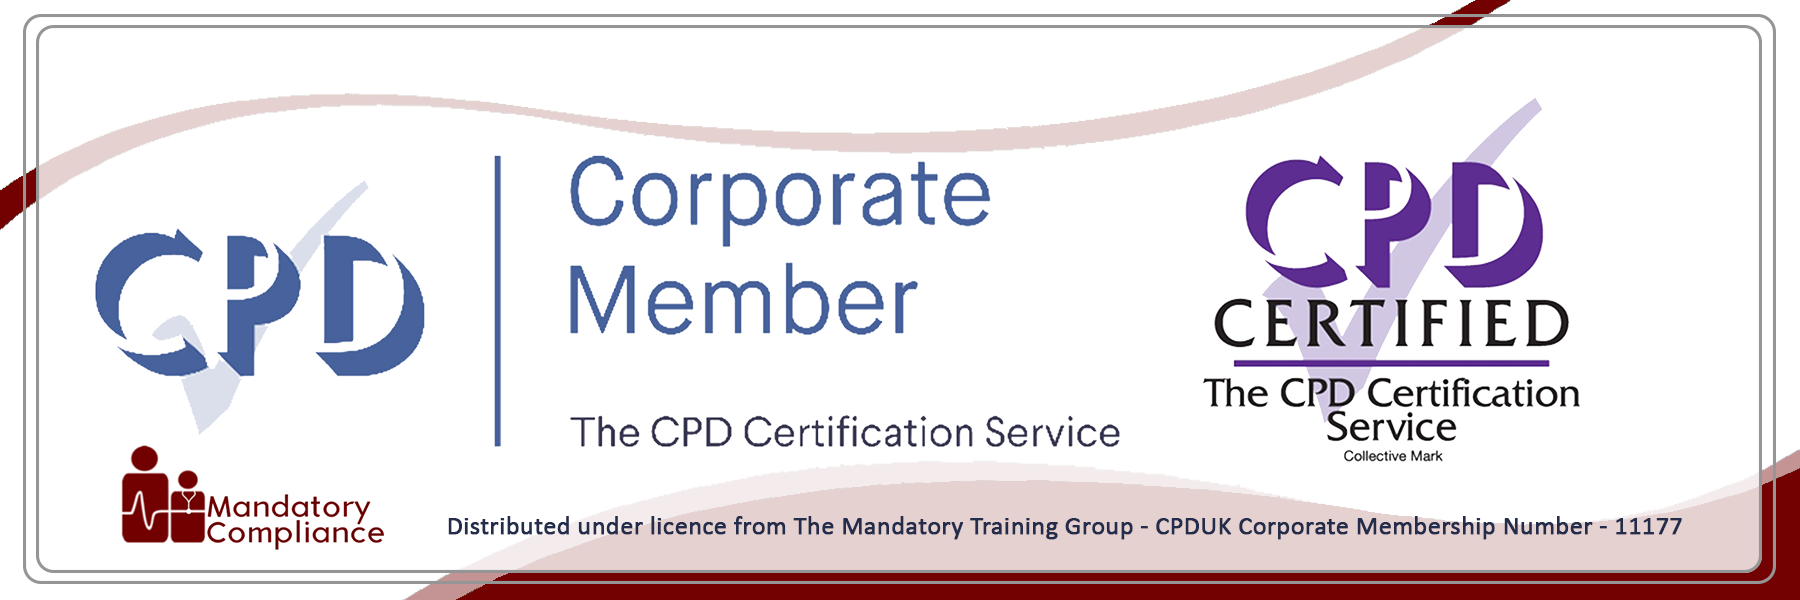 Infection Prevention and Control - E-Learning Courses - Mandatory Compliance UK -